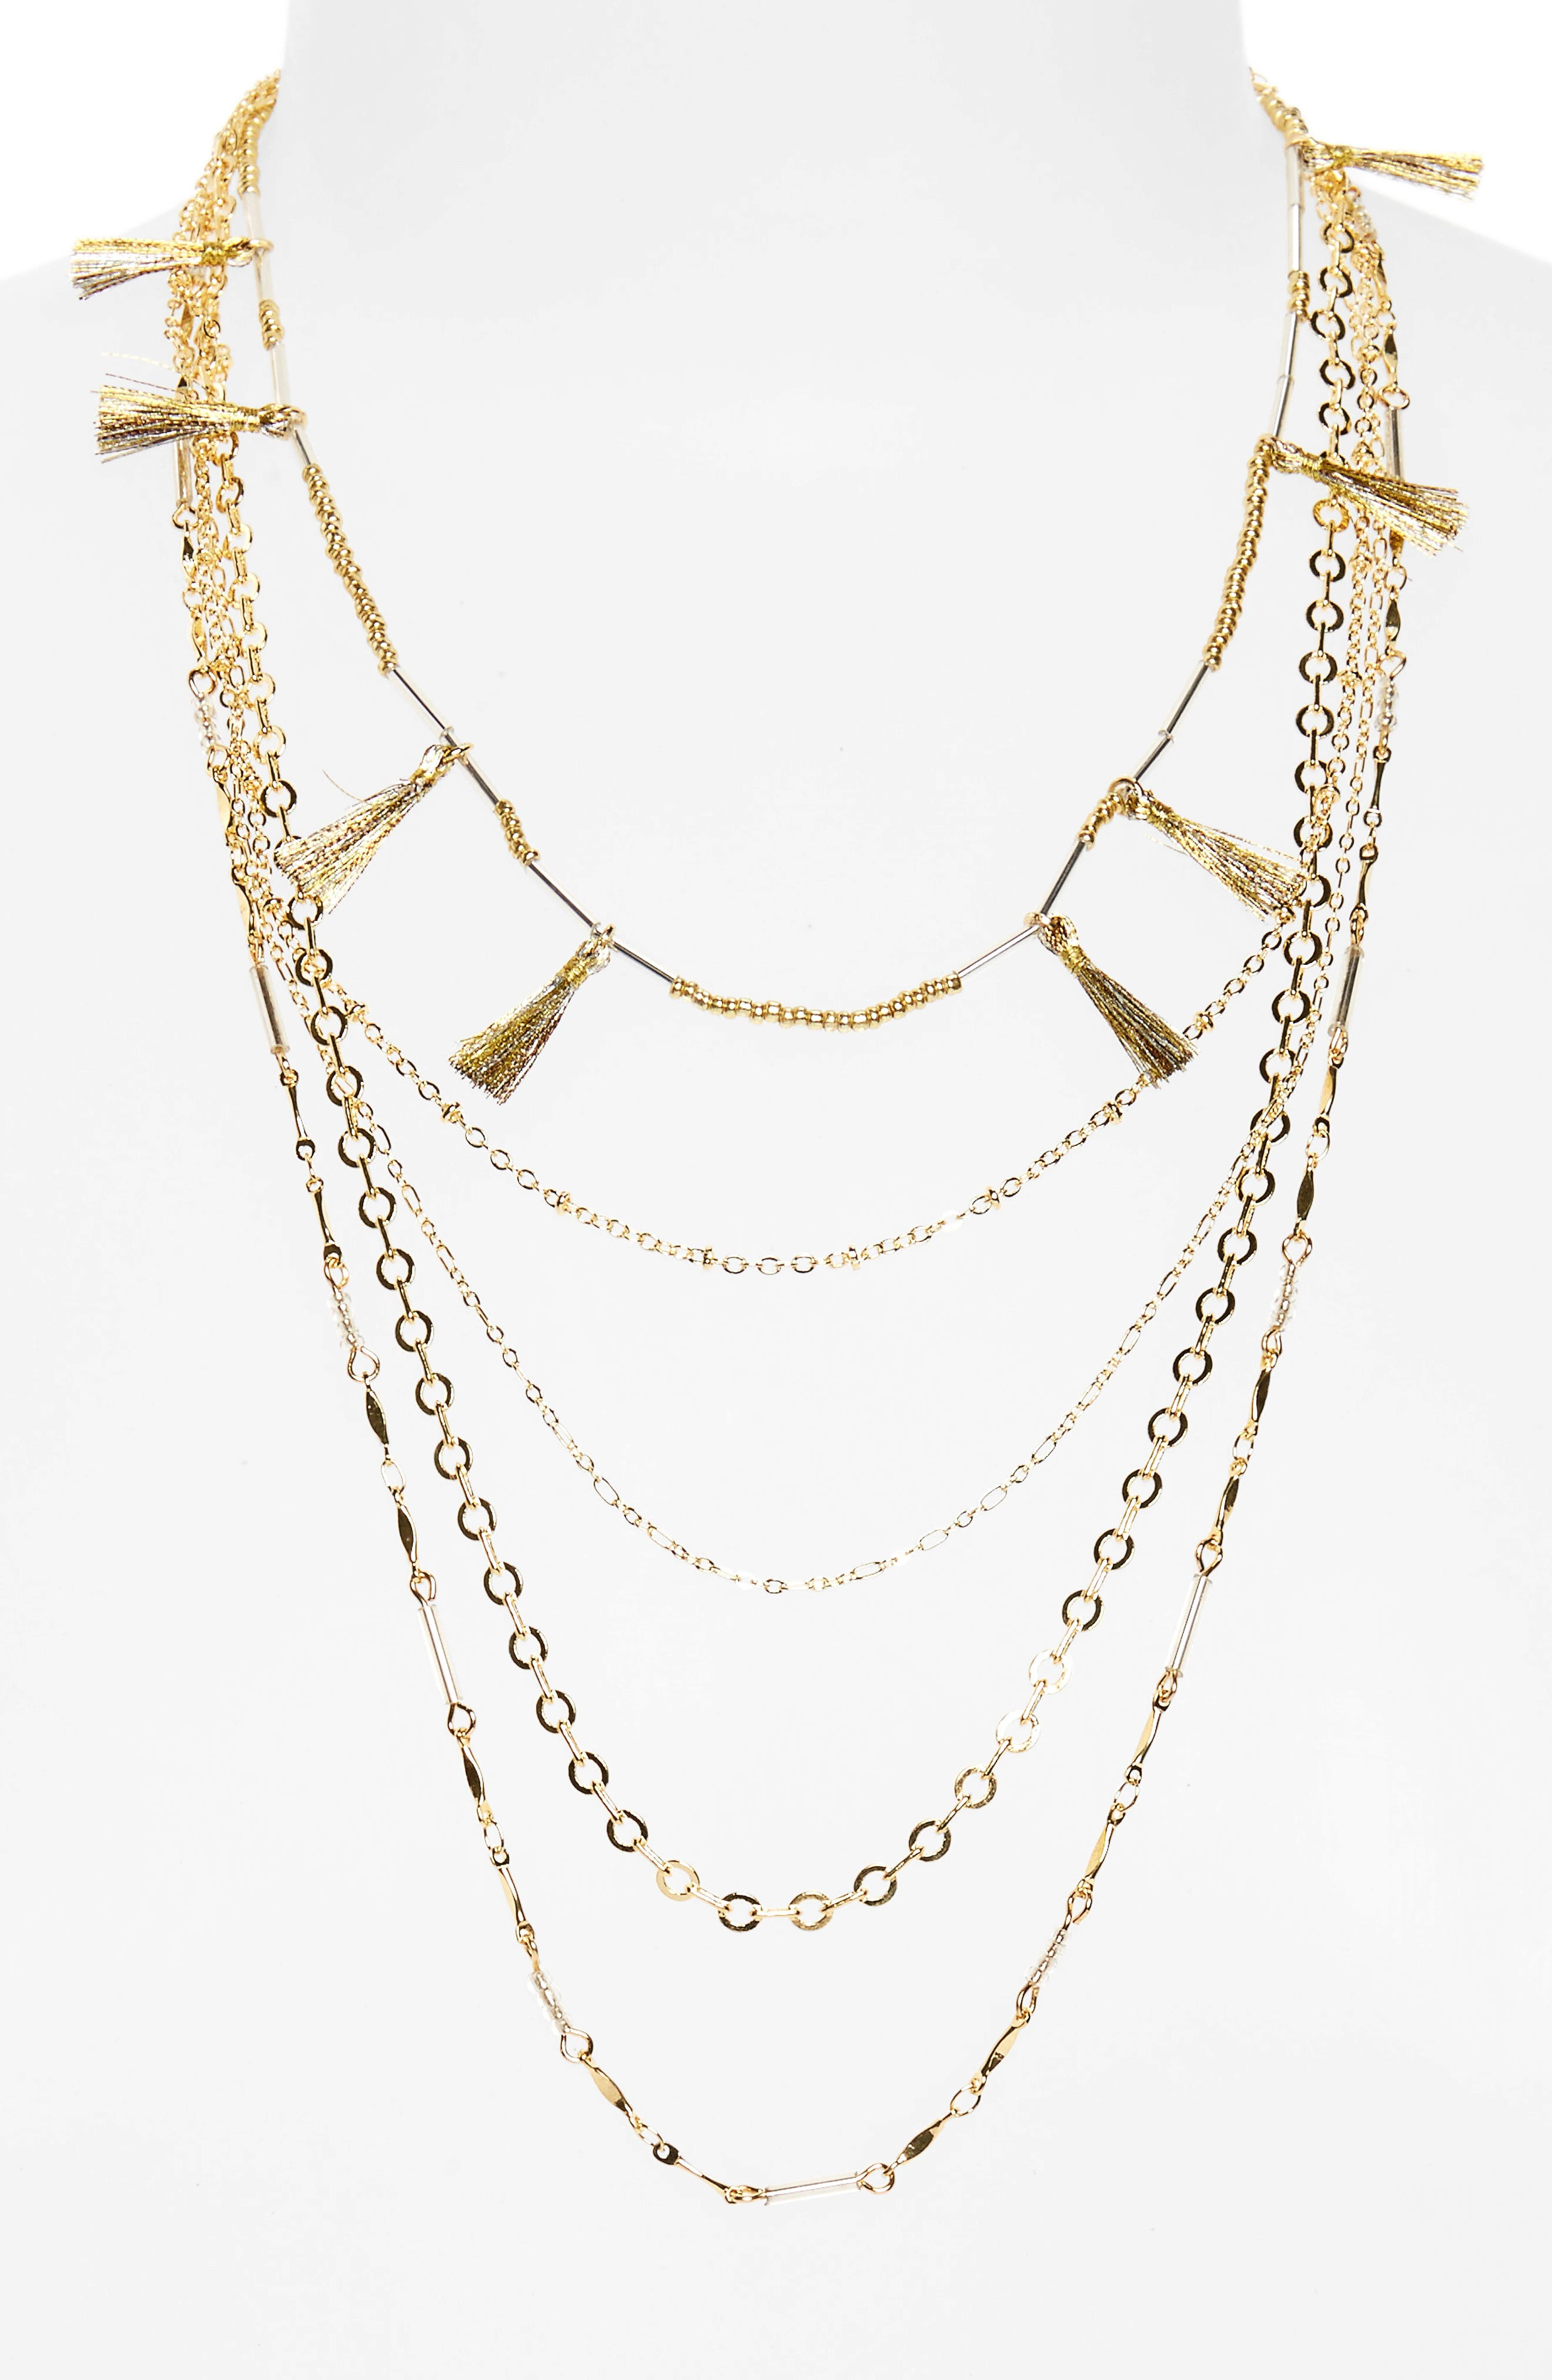 Alternate Image 1 Selected - Rebecca Minkoff Long Layered Necklace with Metallic Tassels